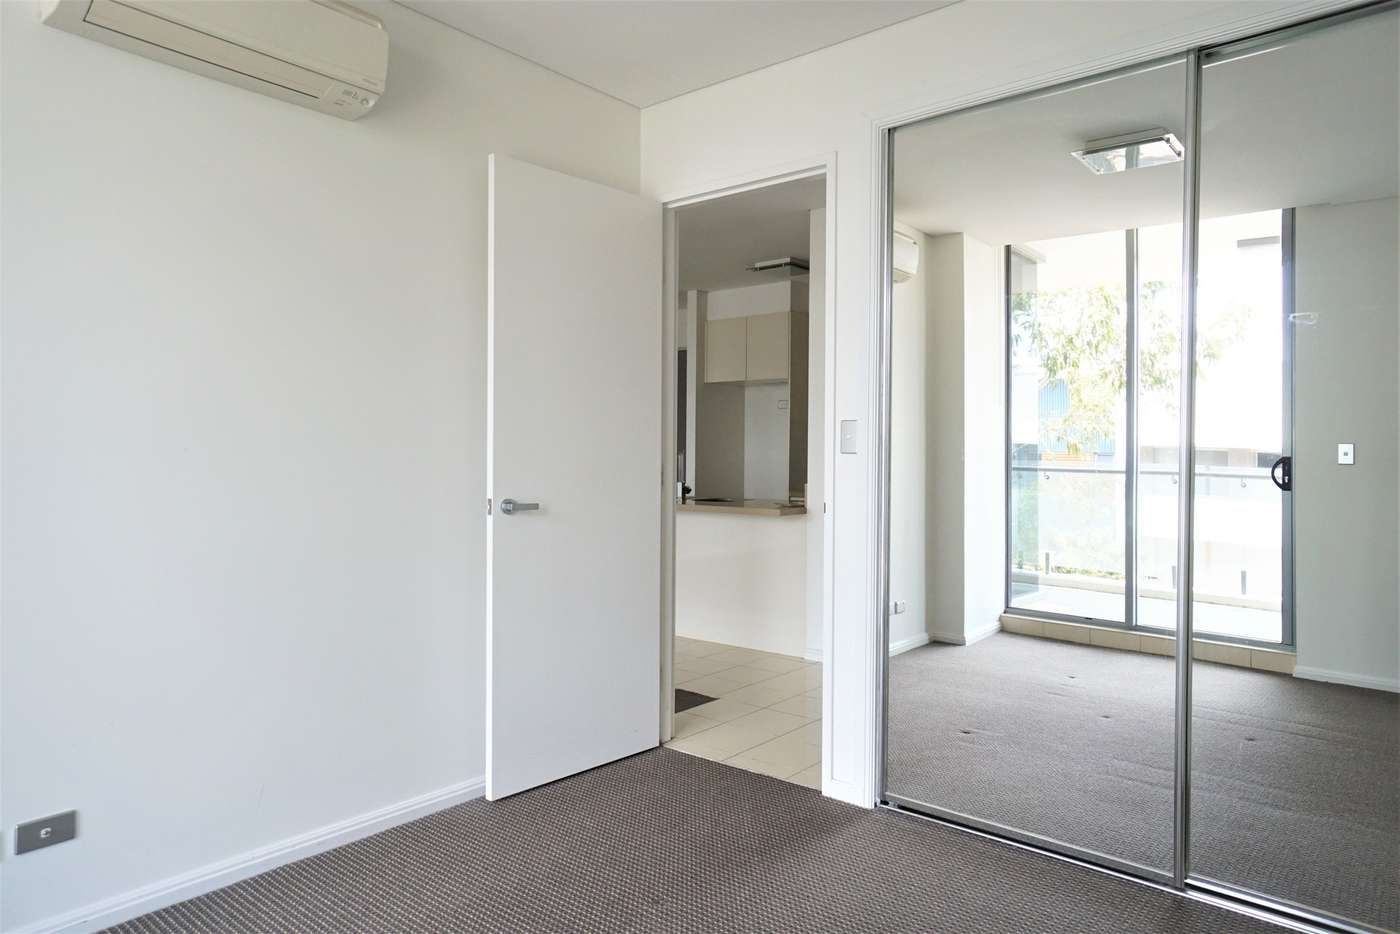 Main view of Homely apartment listing, 104/1 Ferntree Place, Epping NSW 2121